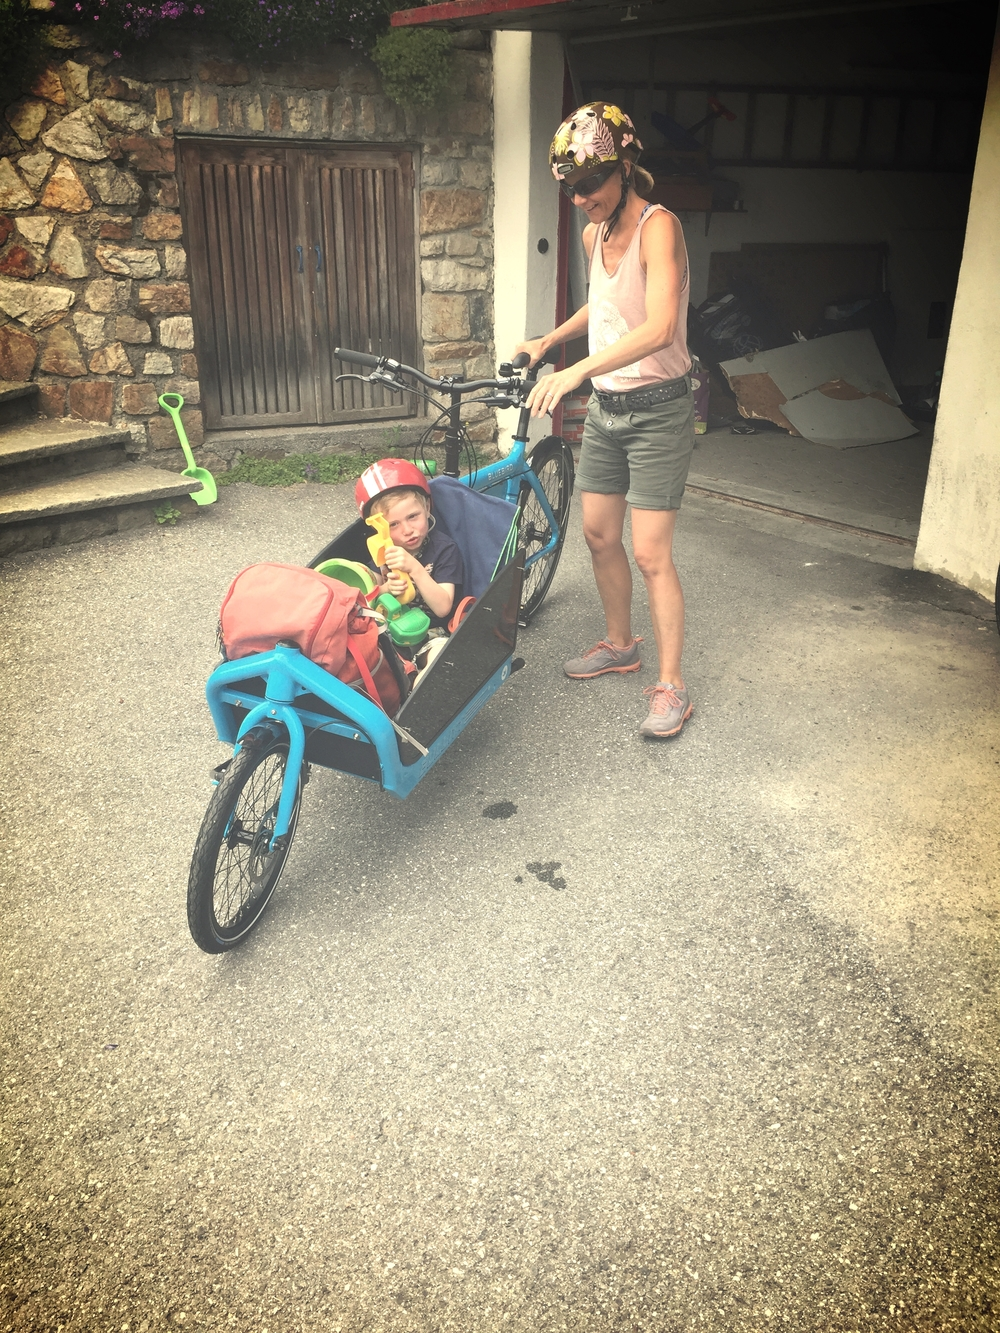 Mama Barbara taking Maurin out for a spin in Blue Bird. Cool cargo bike!